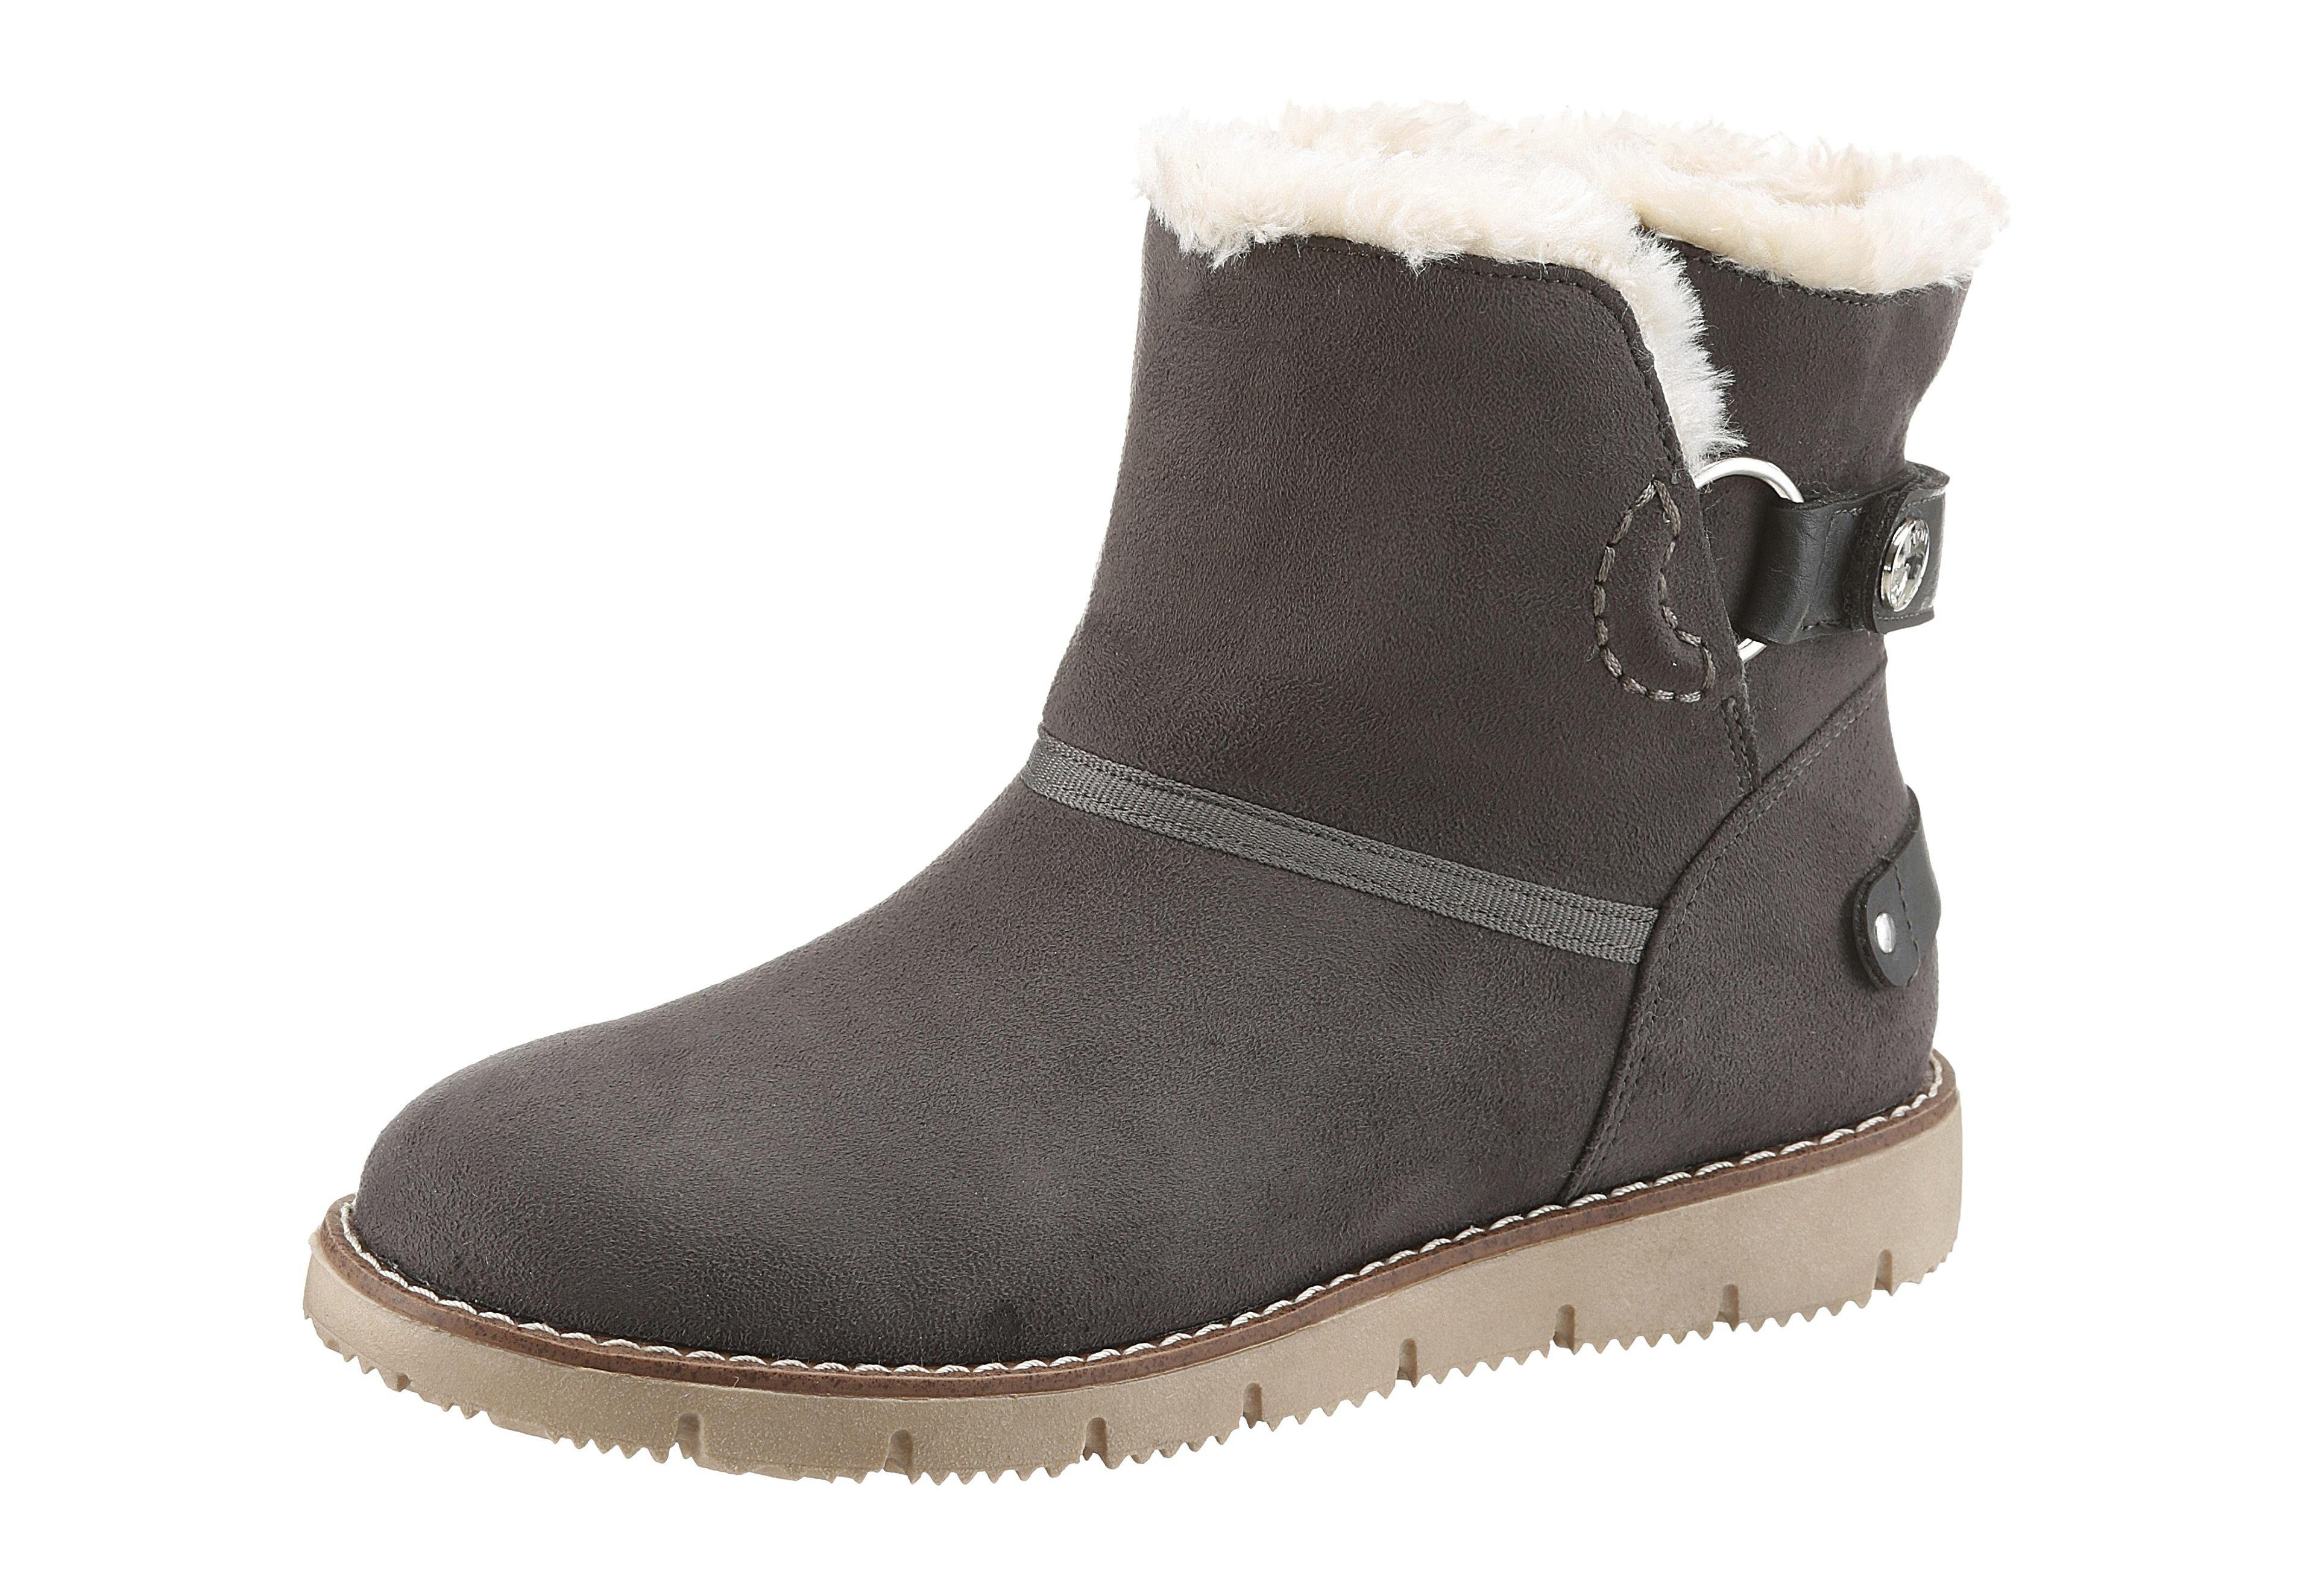 Tom Tailor Winterboots | Schuhe > Boots > Winterboots | Grau | Tom Tailor